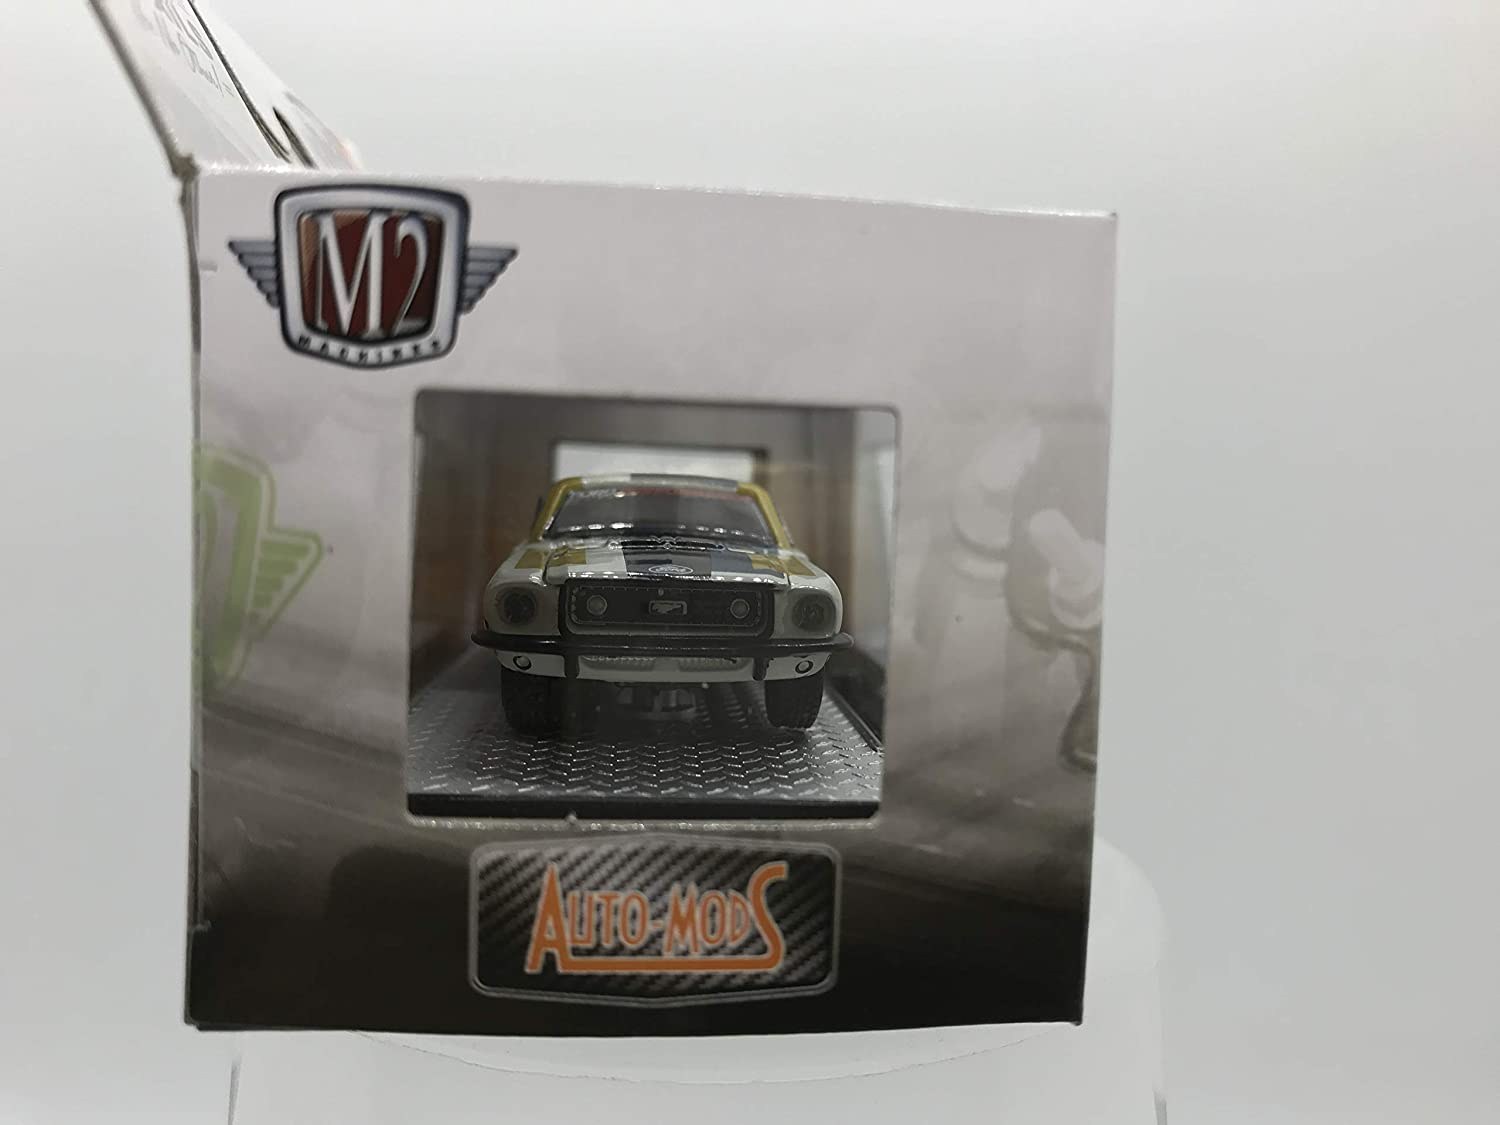 1 of 7000 M2 Machines by M2 Collectible Auto-Mods 1968 Ford Mustang GT 1:64 Scale AM07 20-13 White//Blue//Yellow Details Like NO Other